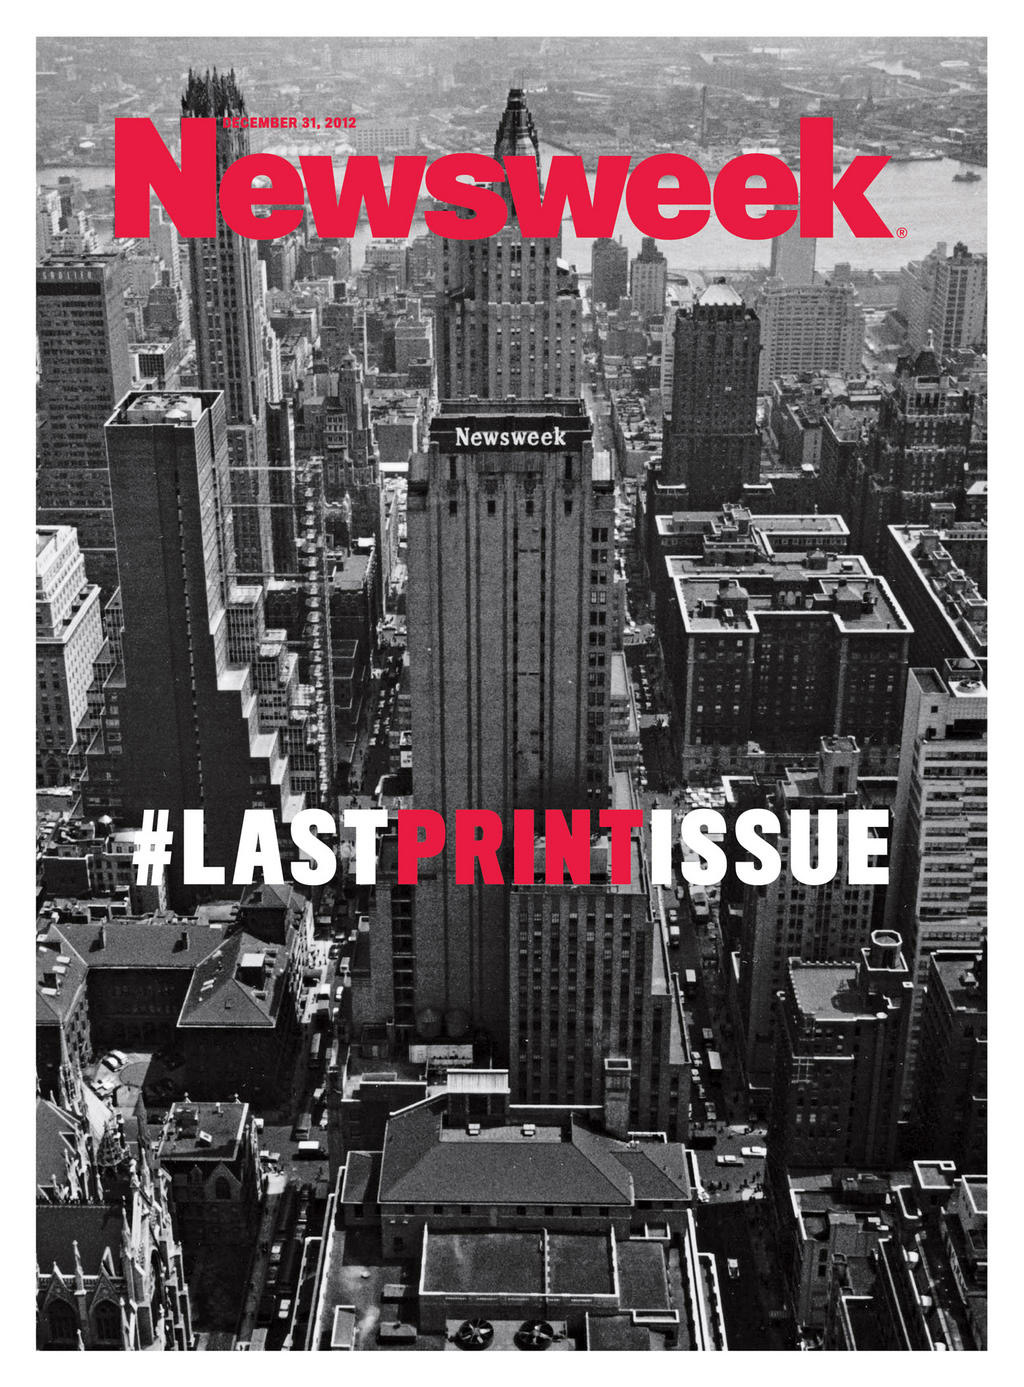 The cover of Newsweek last print issue.